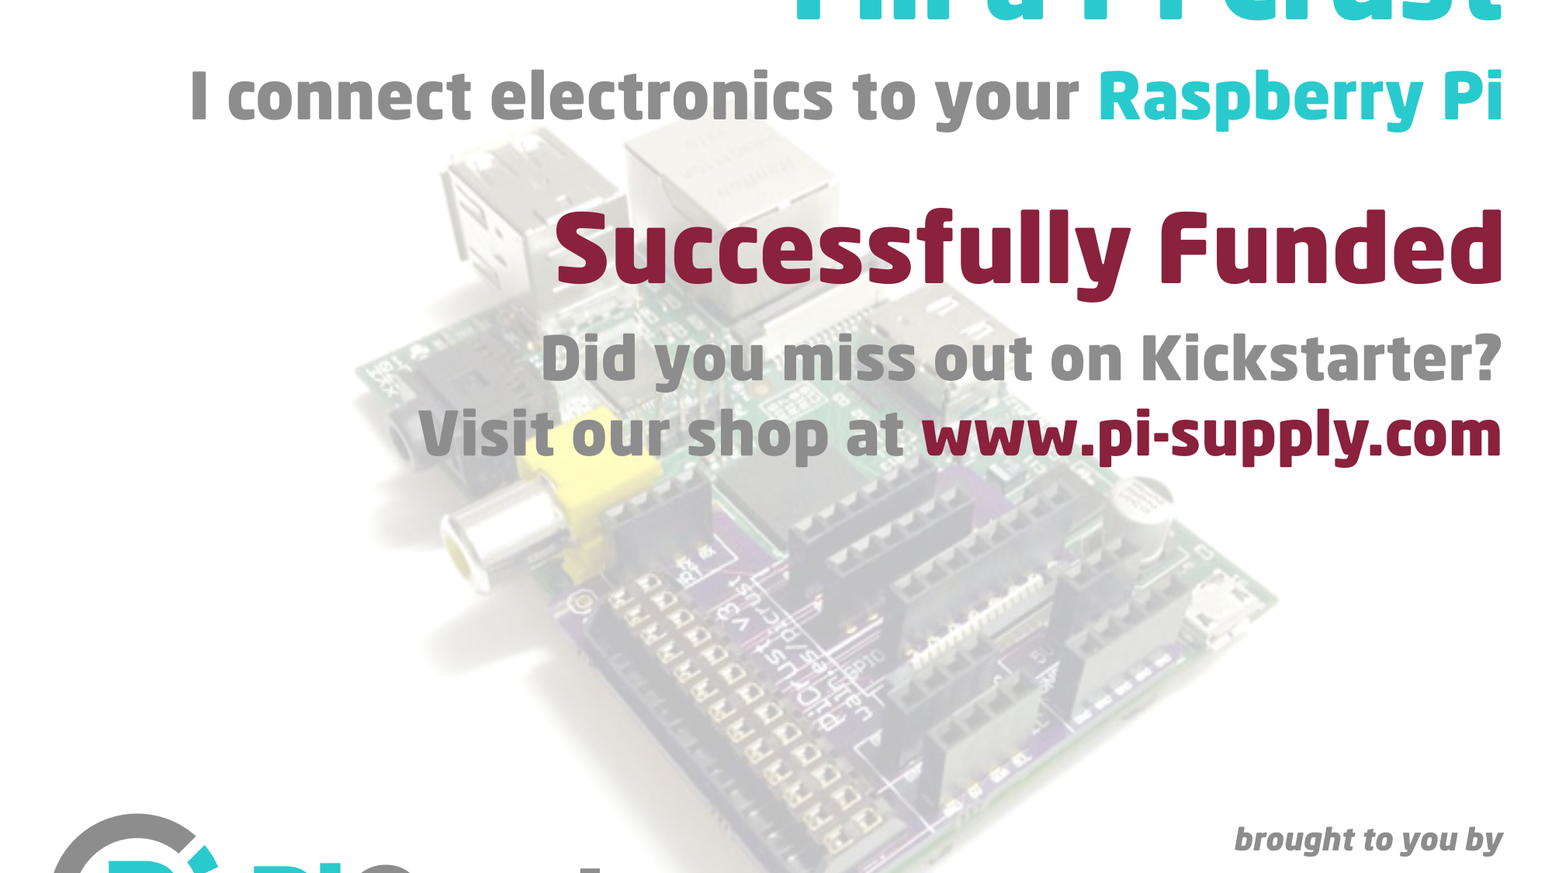 Pi Crust is a breakout board for the Raspberry Pi that makes it easier to connect electronics - help us to bring this into kit form!